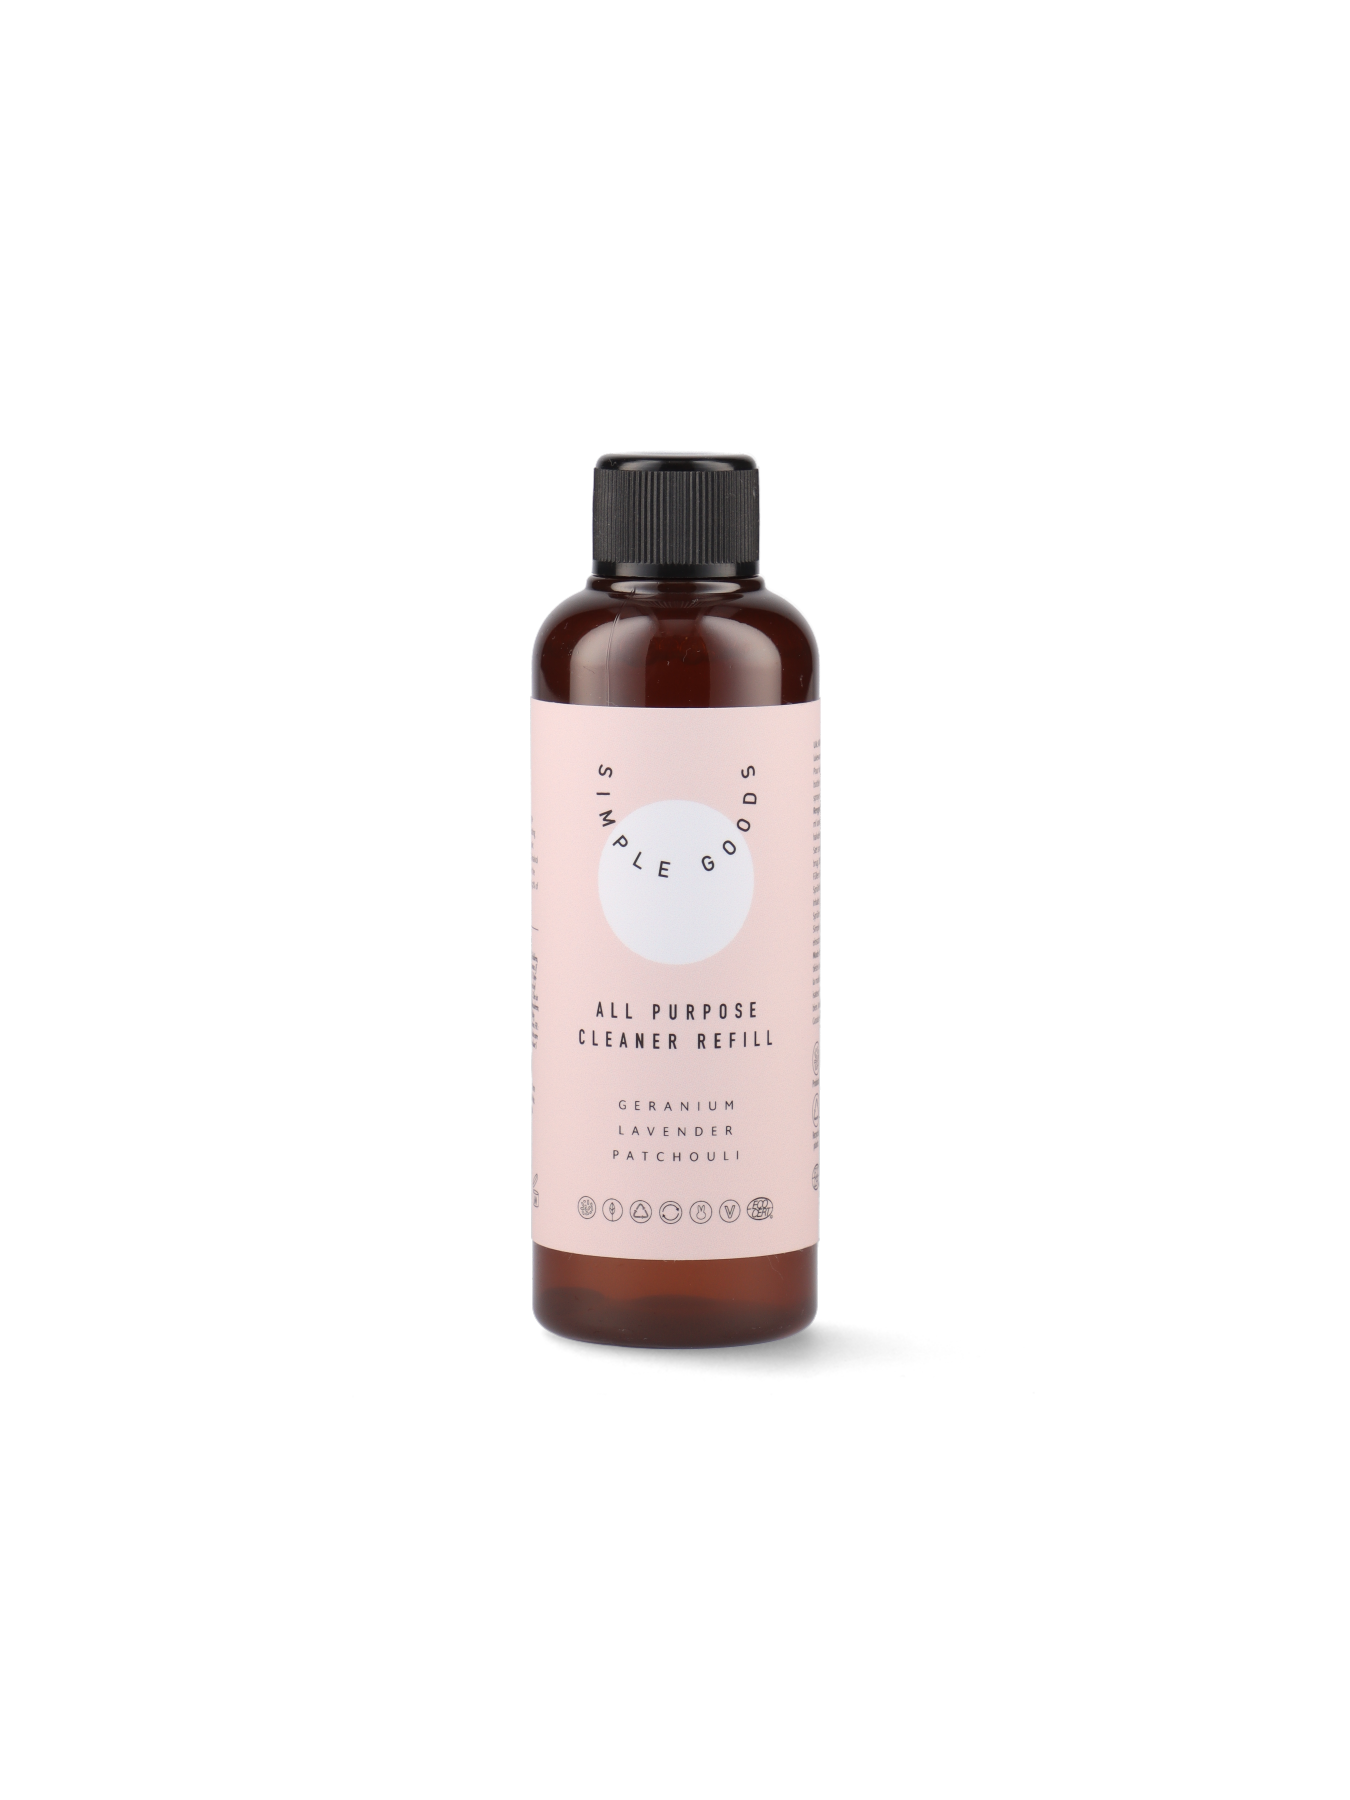 Simple Goods - Refill All Purpose 100ml, Geranium